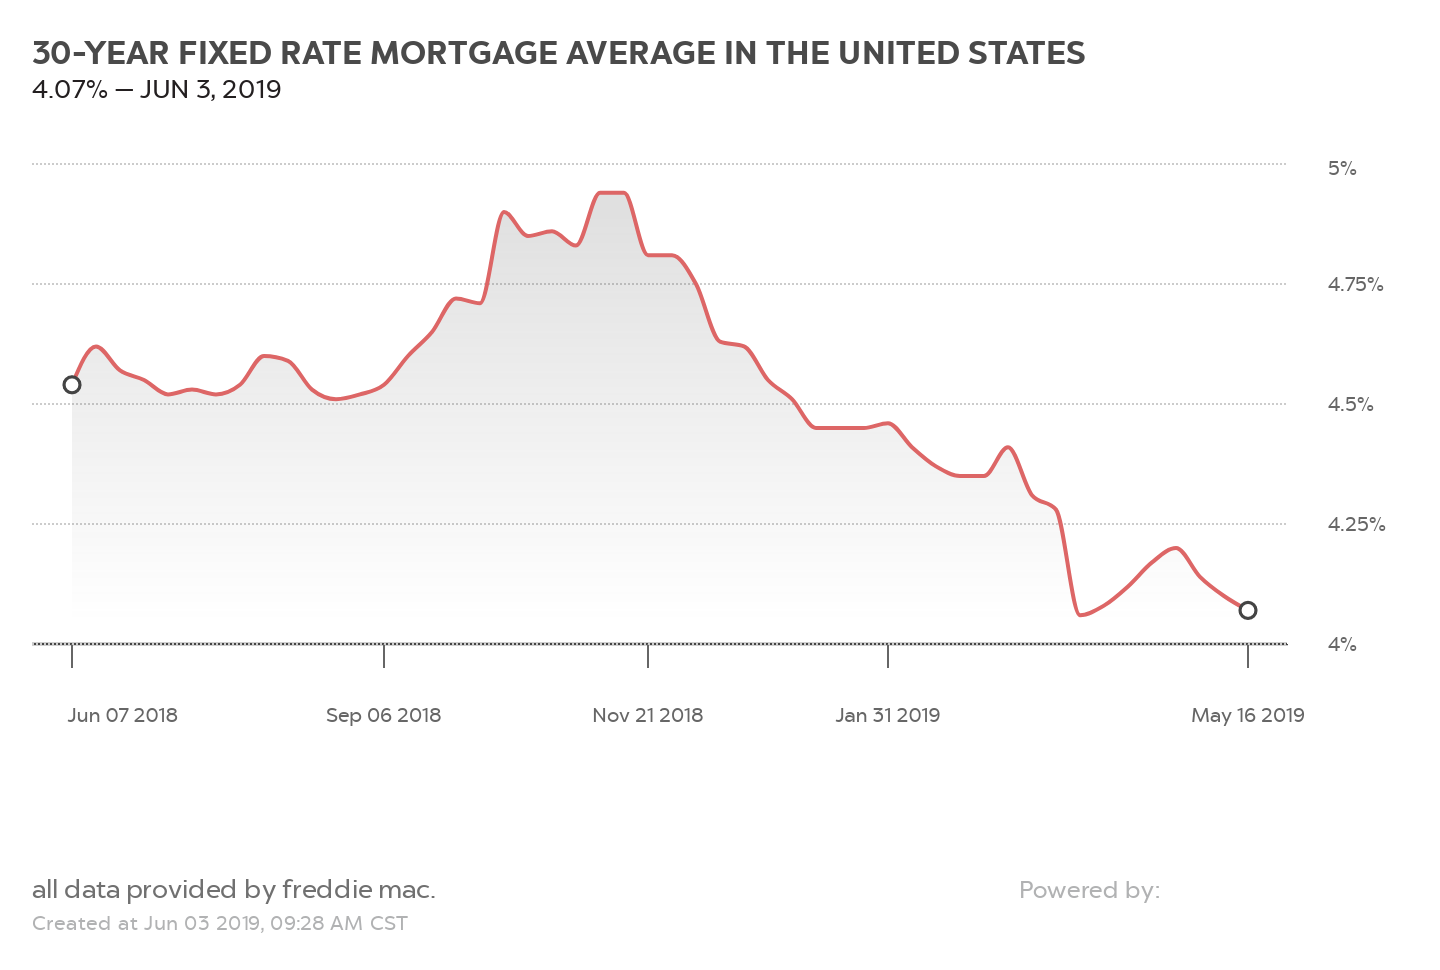 30-YEAR FIXED RATE MORTGAGE AVERAGE IN THE UNITED STATES